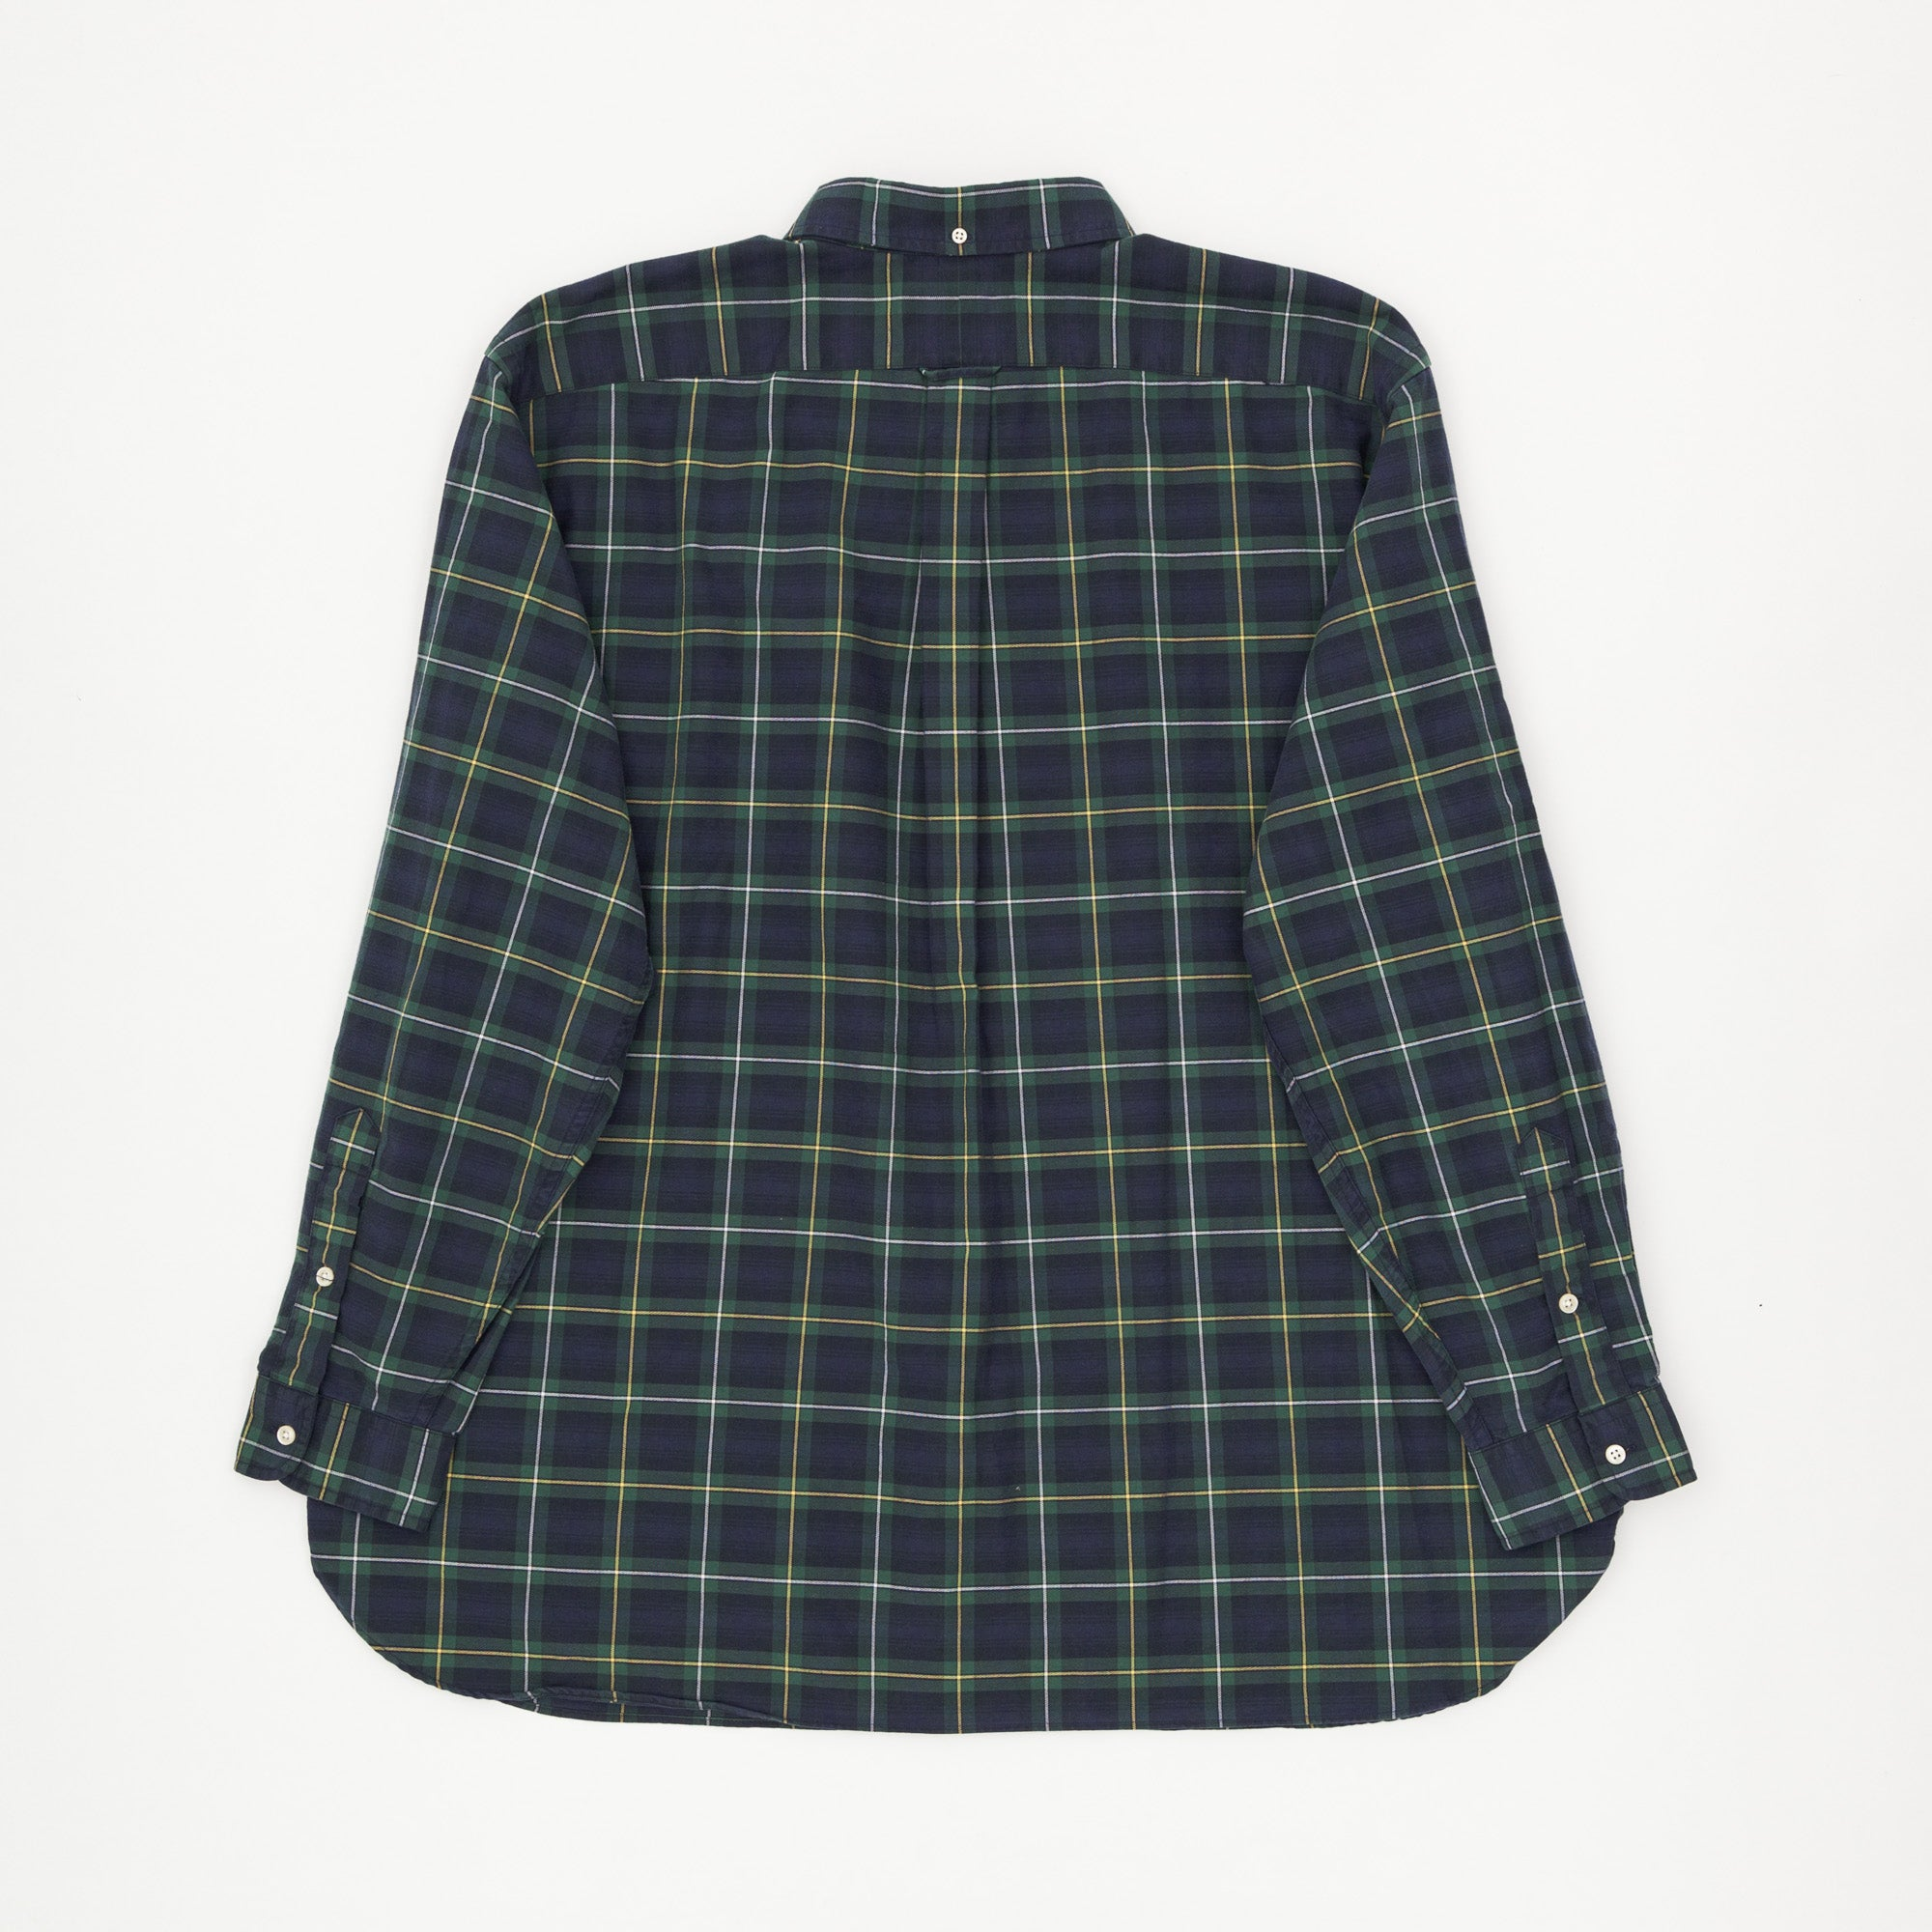 Checked Shirt Oxford Shirt